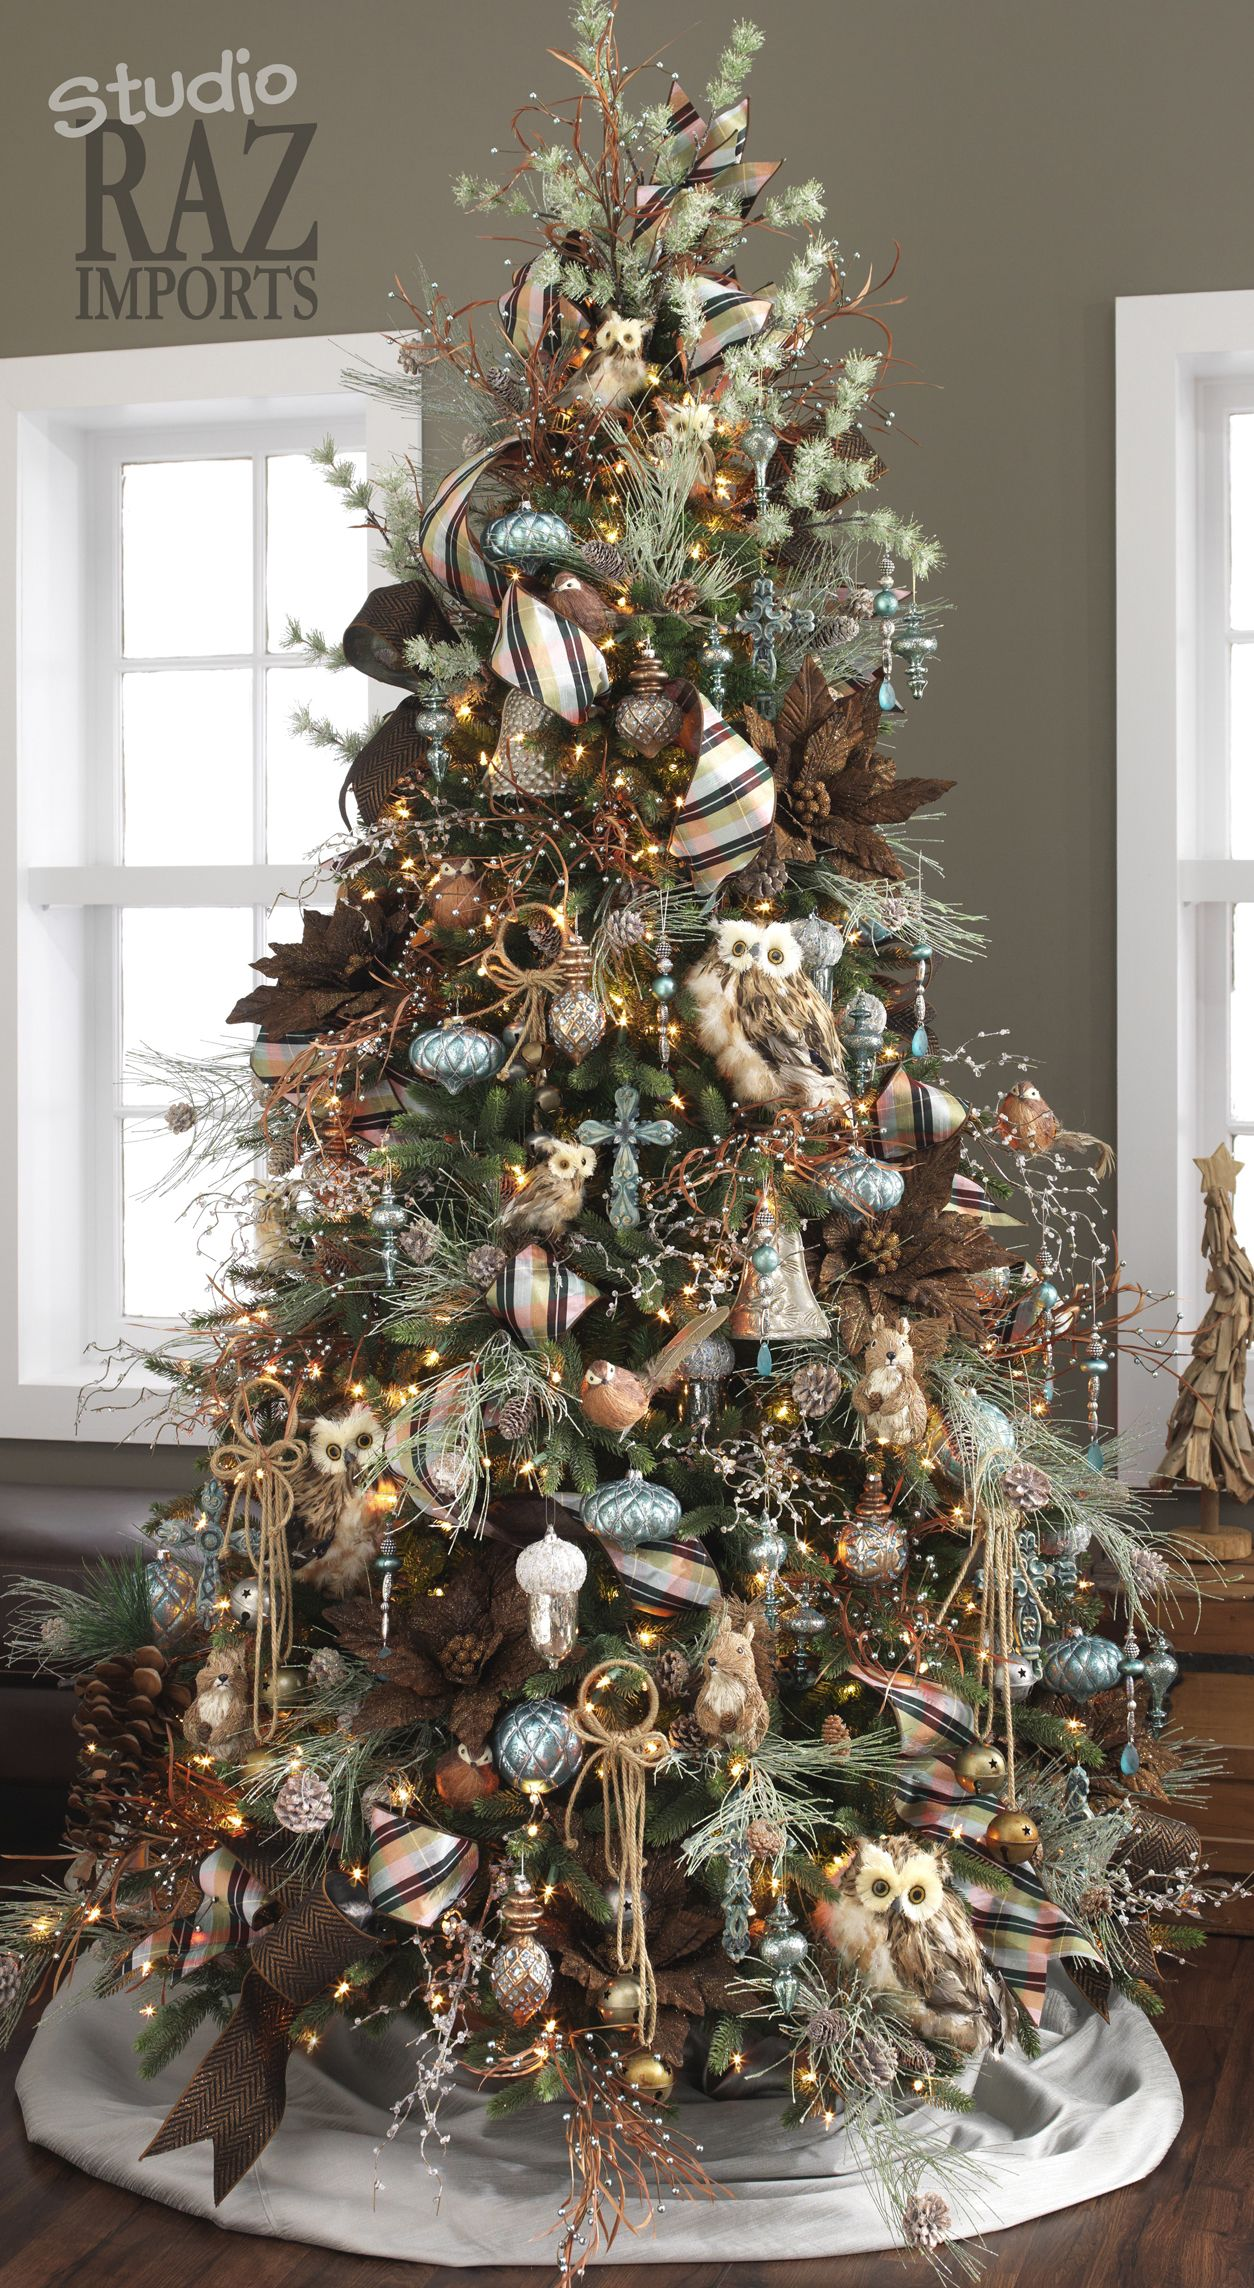 Christmas tree ideas rustic woodland owls herringbone ribbon